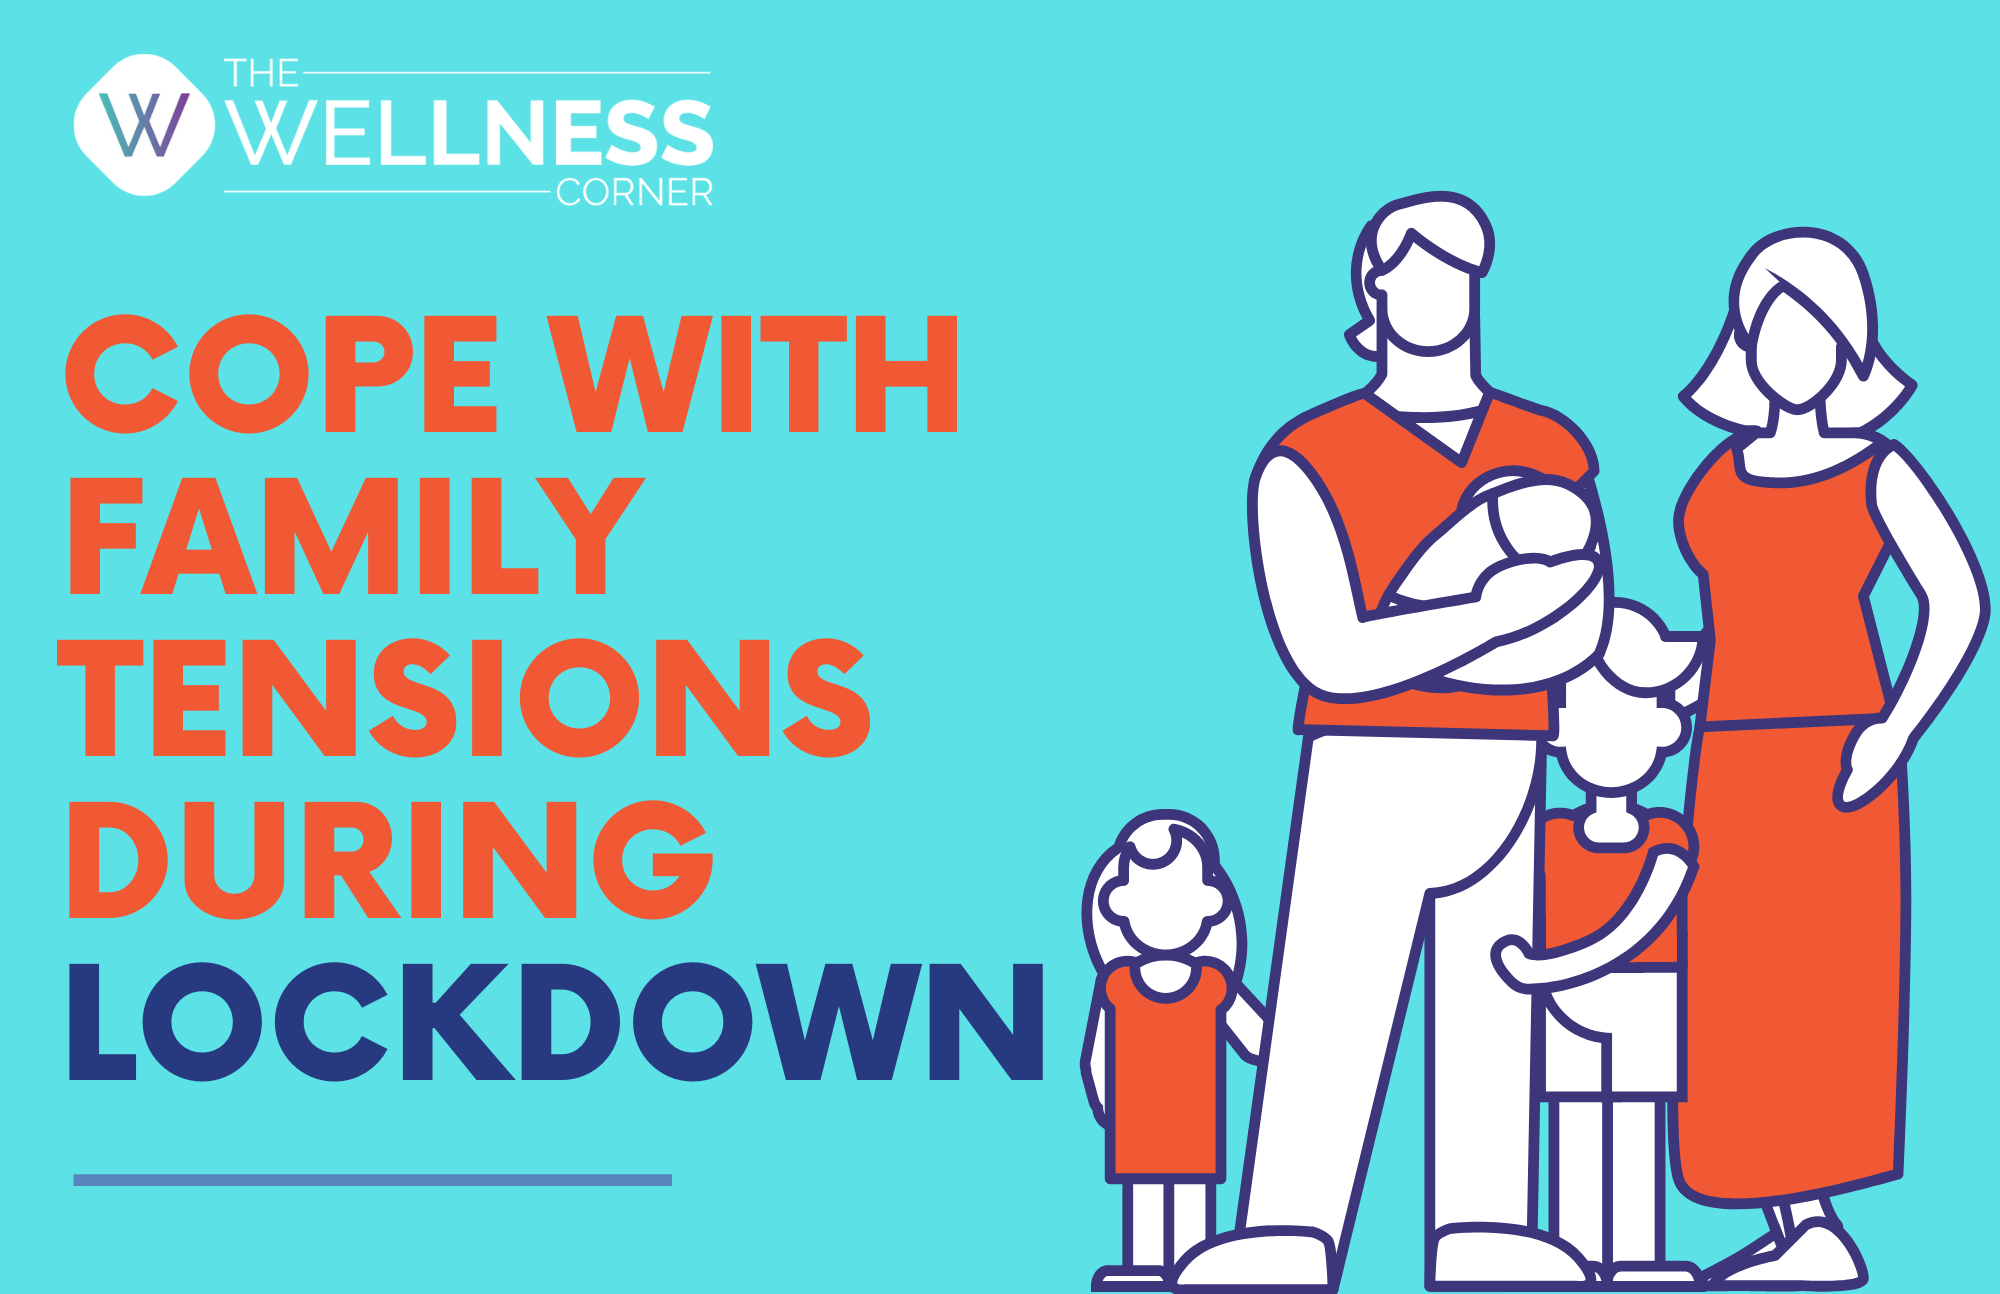 How Can You Cope With Family Tensions During Lockdown?